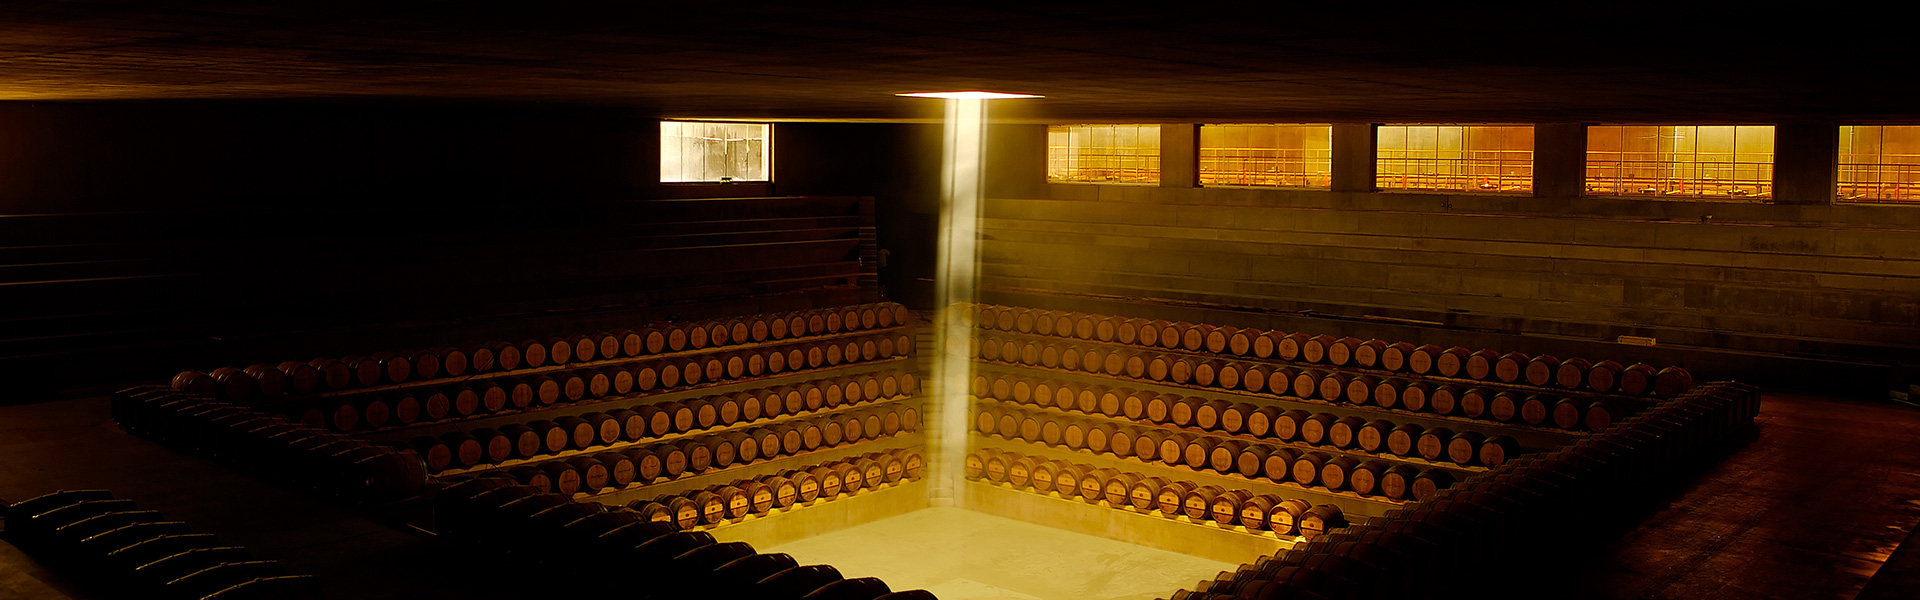 In wine the truth: auteur cinema, architecture and wine